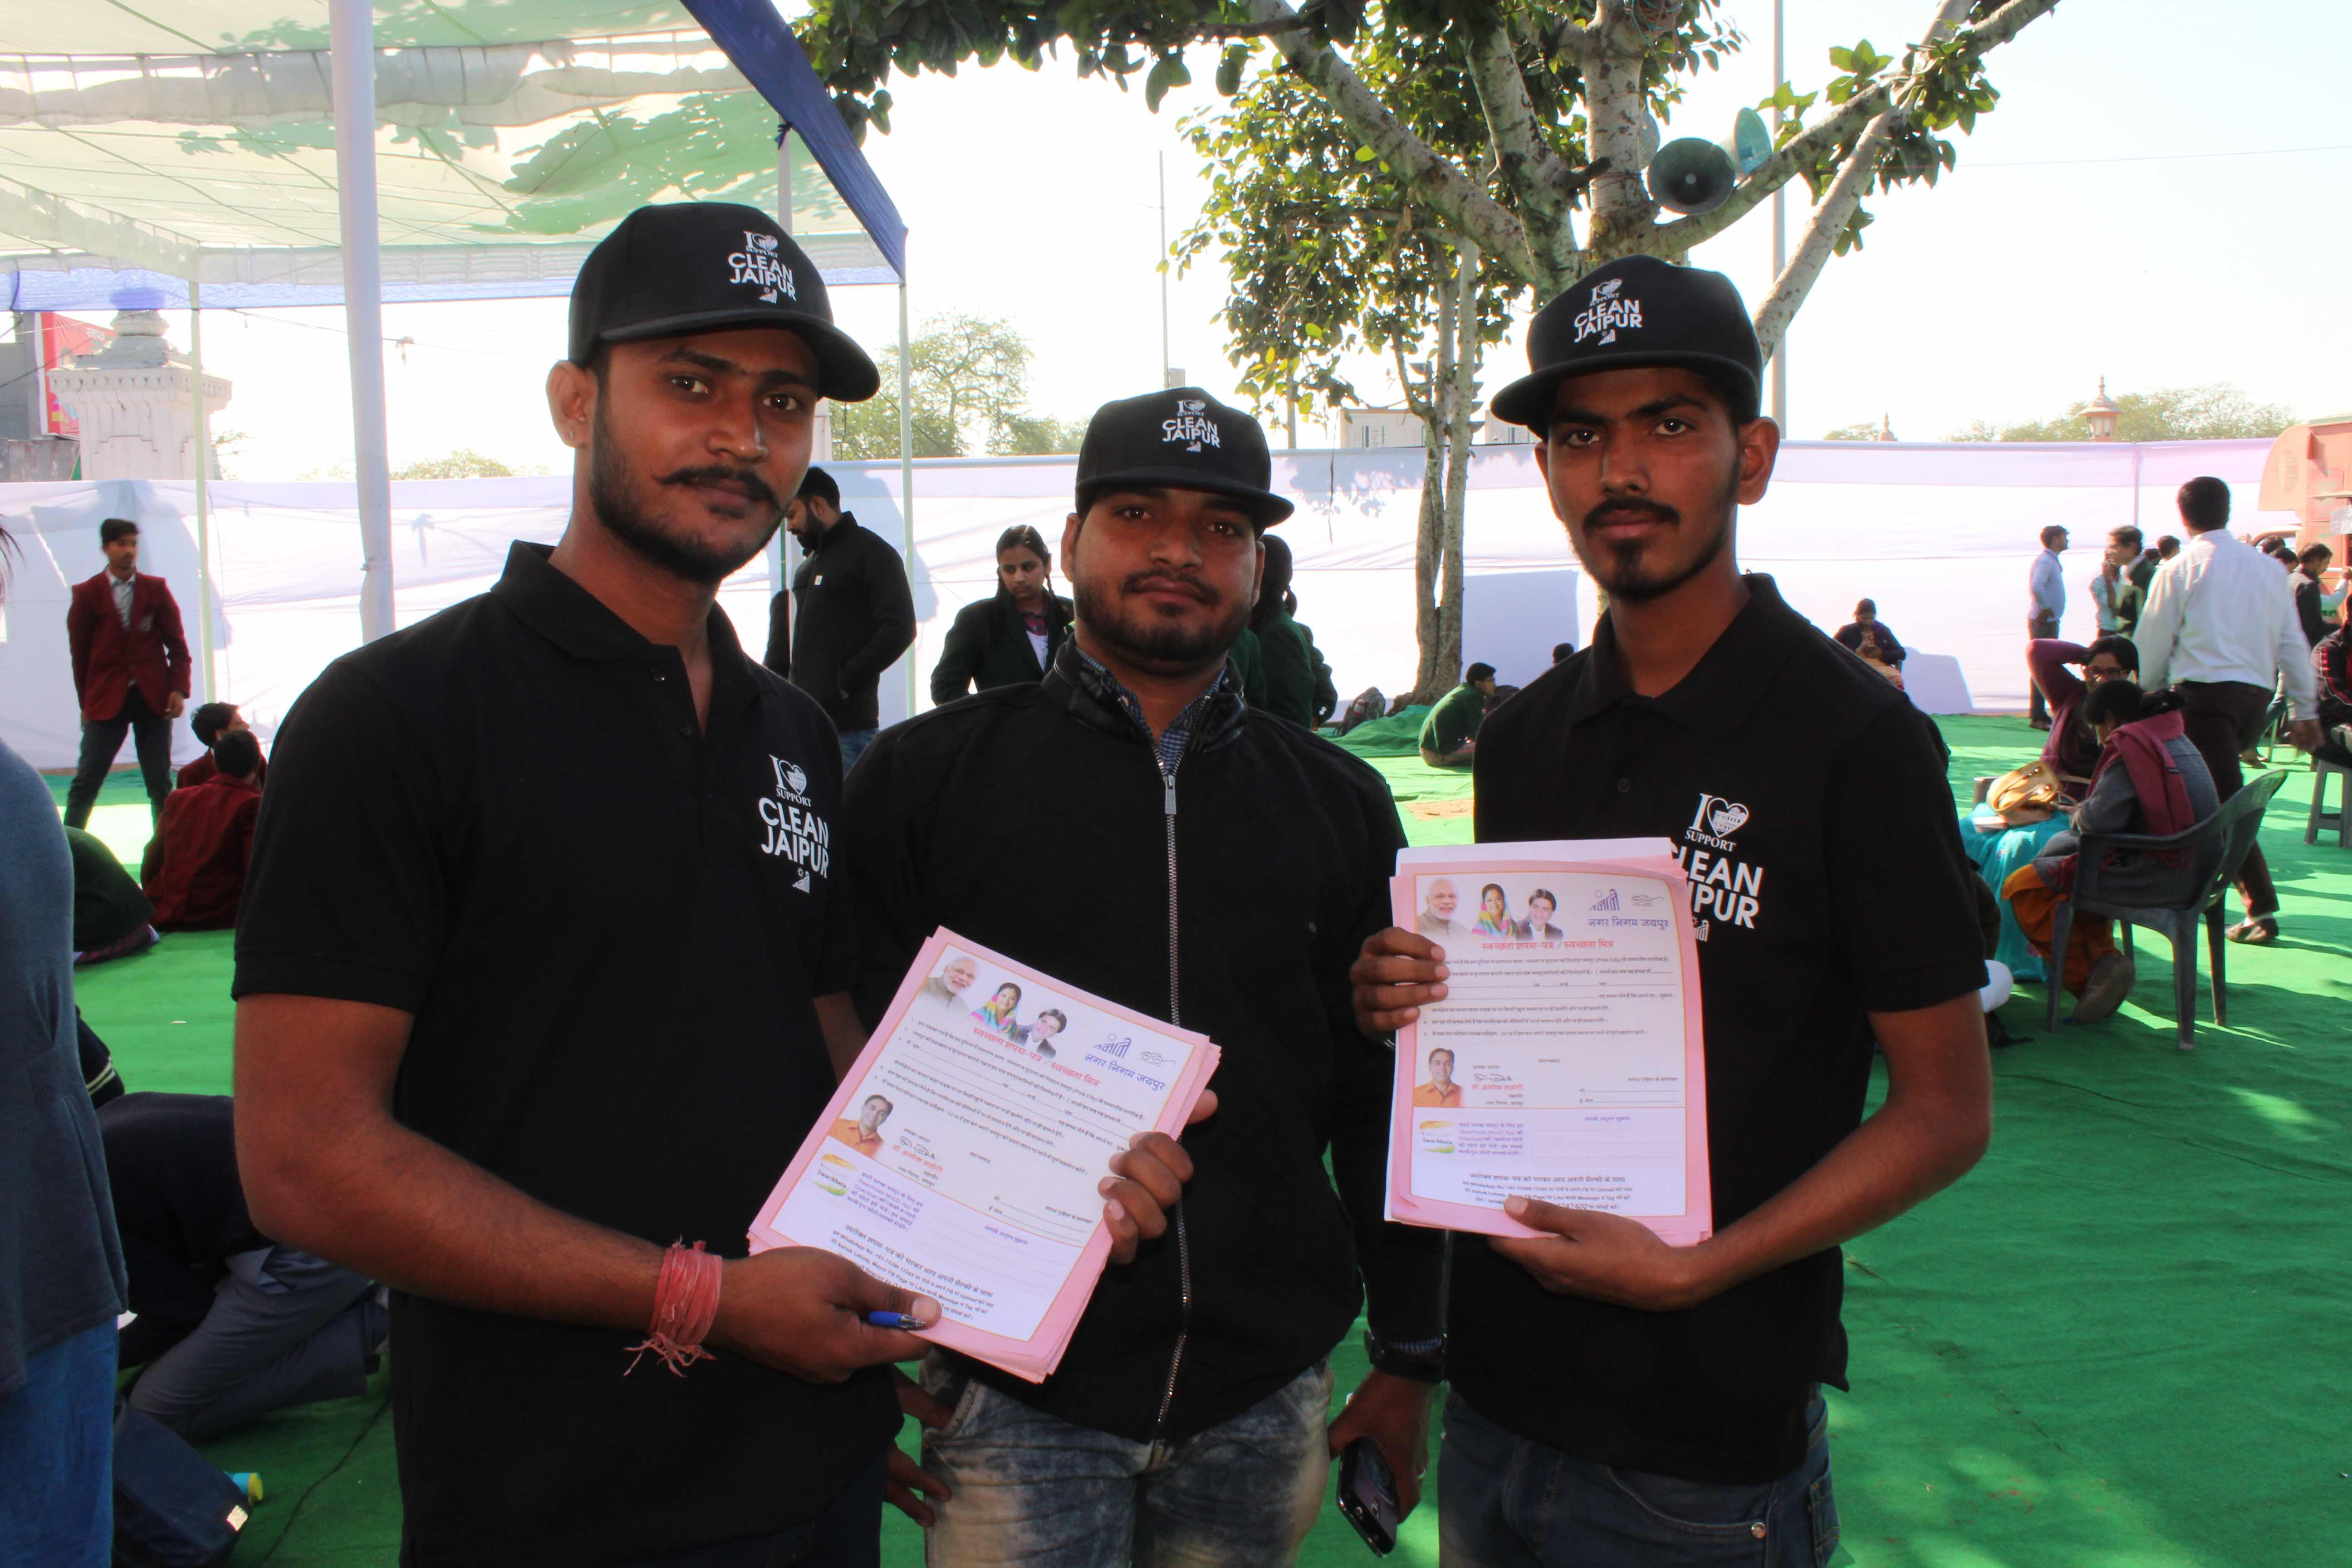 Volunteers hired by the event management company holding up pledge forms. Credit: Shruti Jain